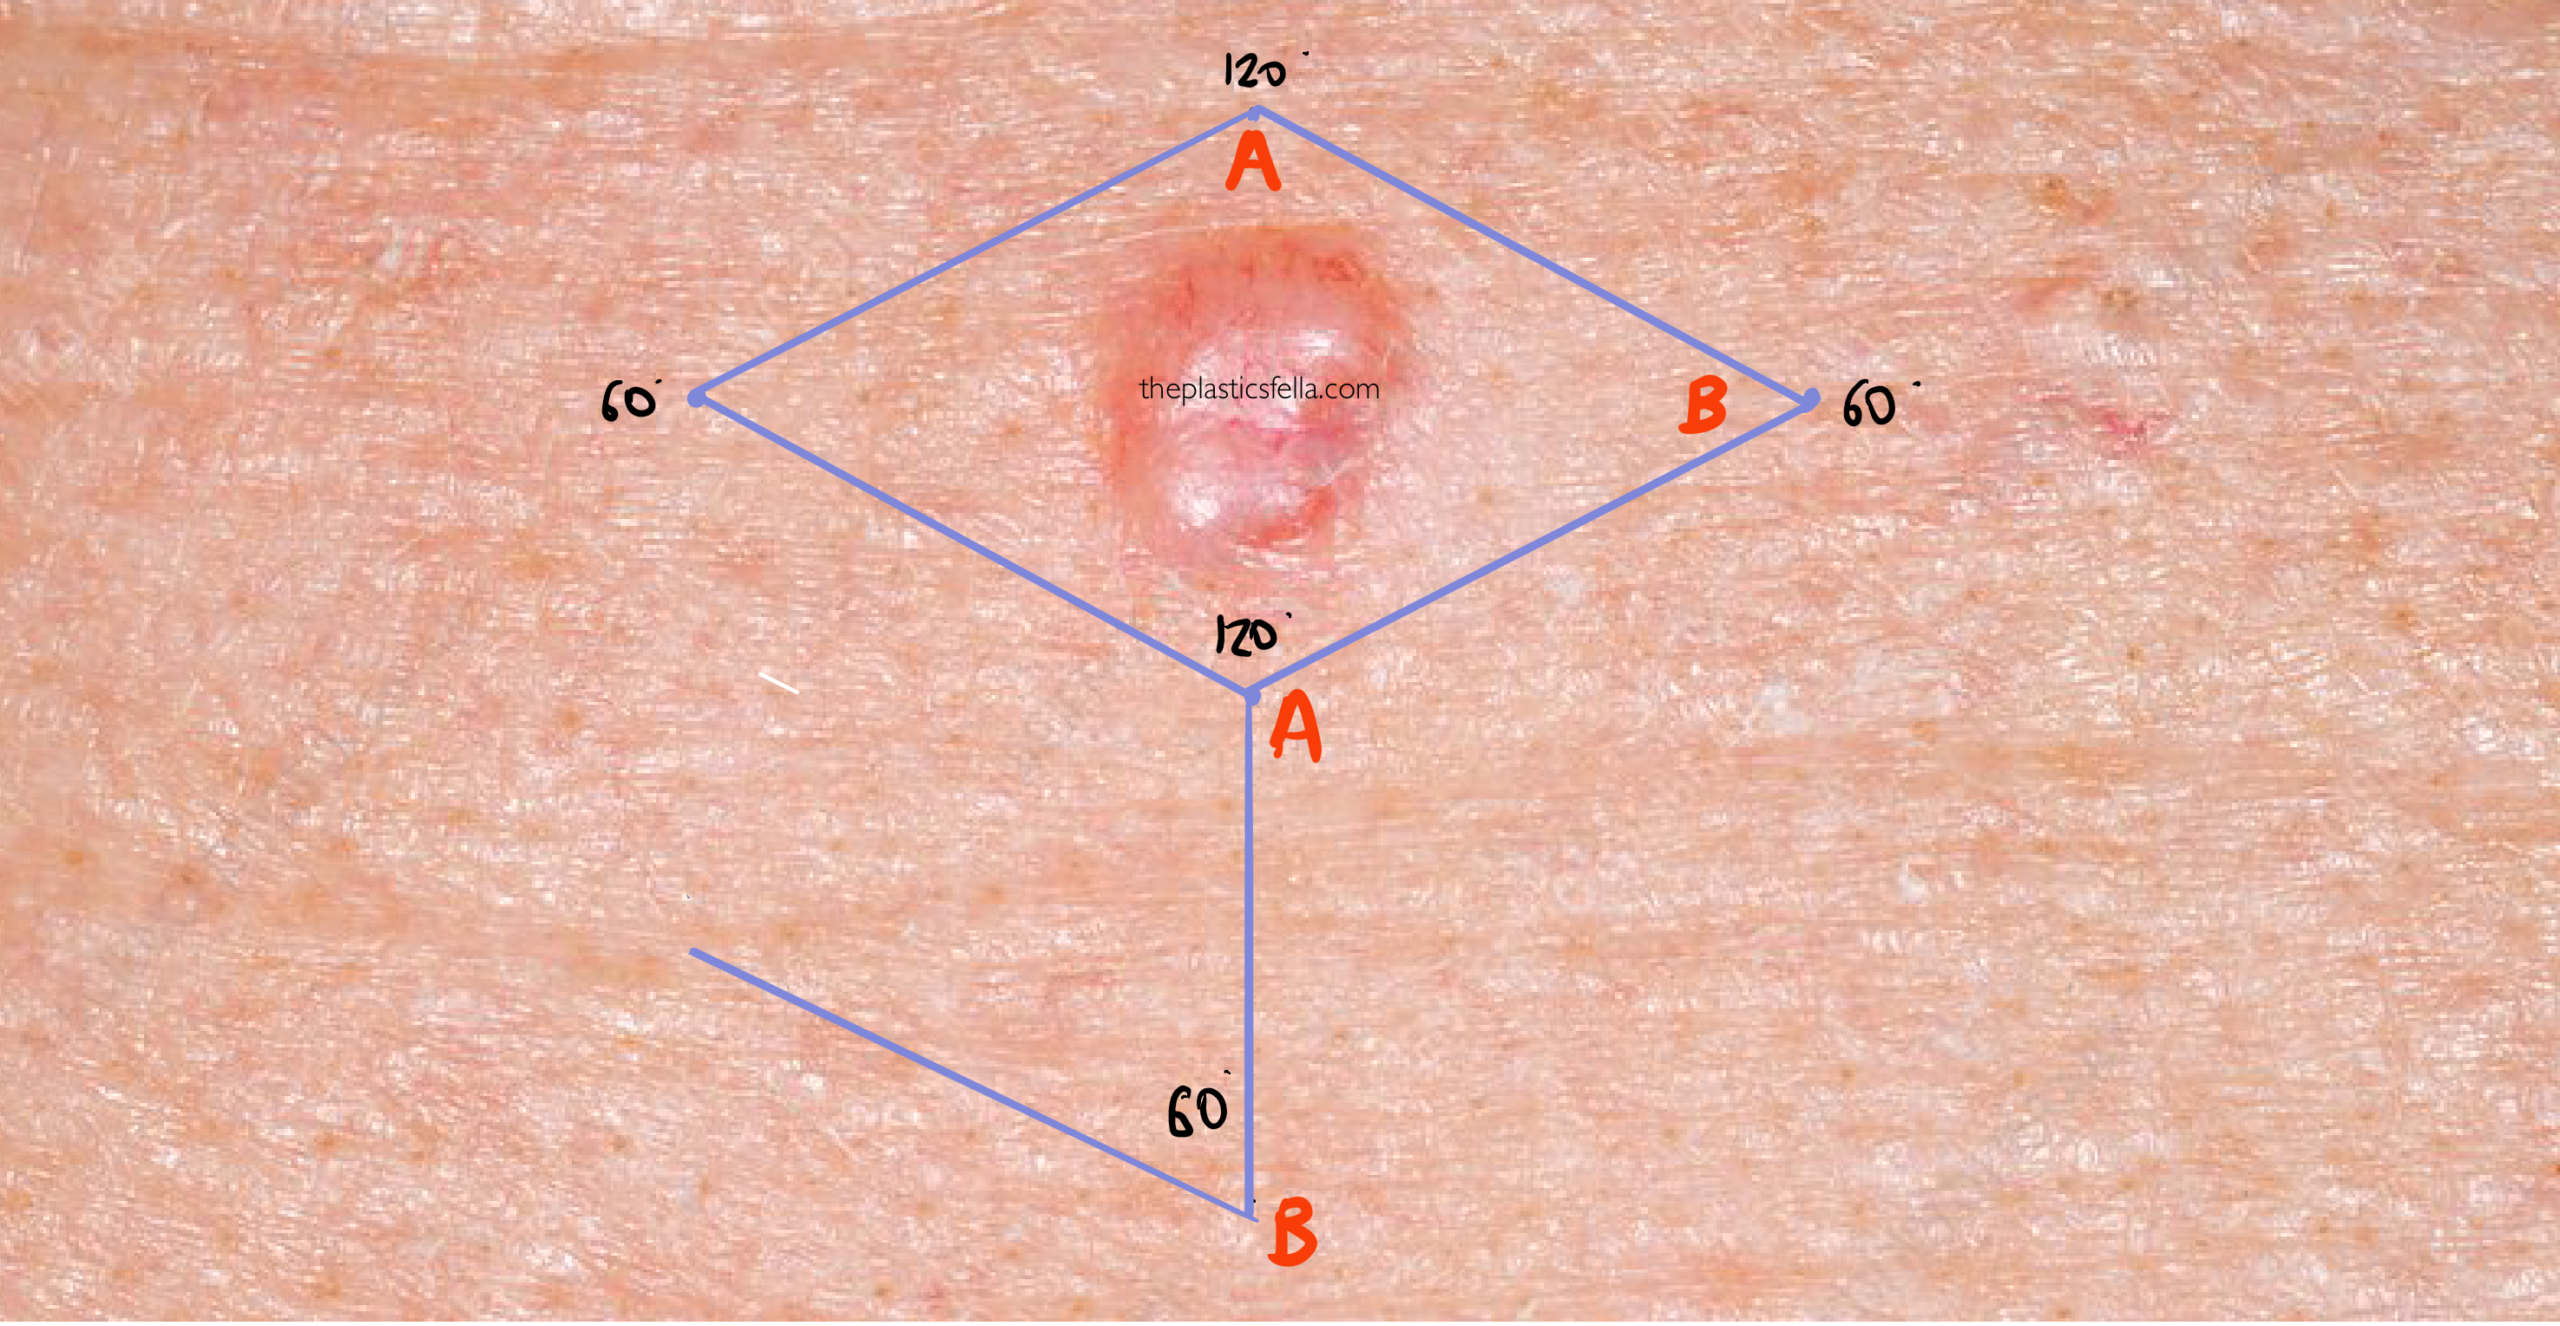 Rhomboid flap drawing on face